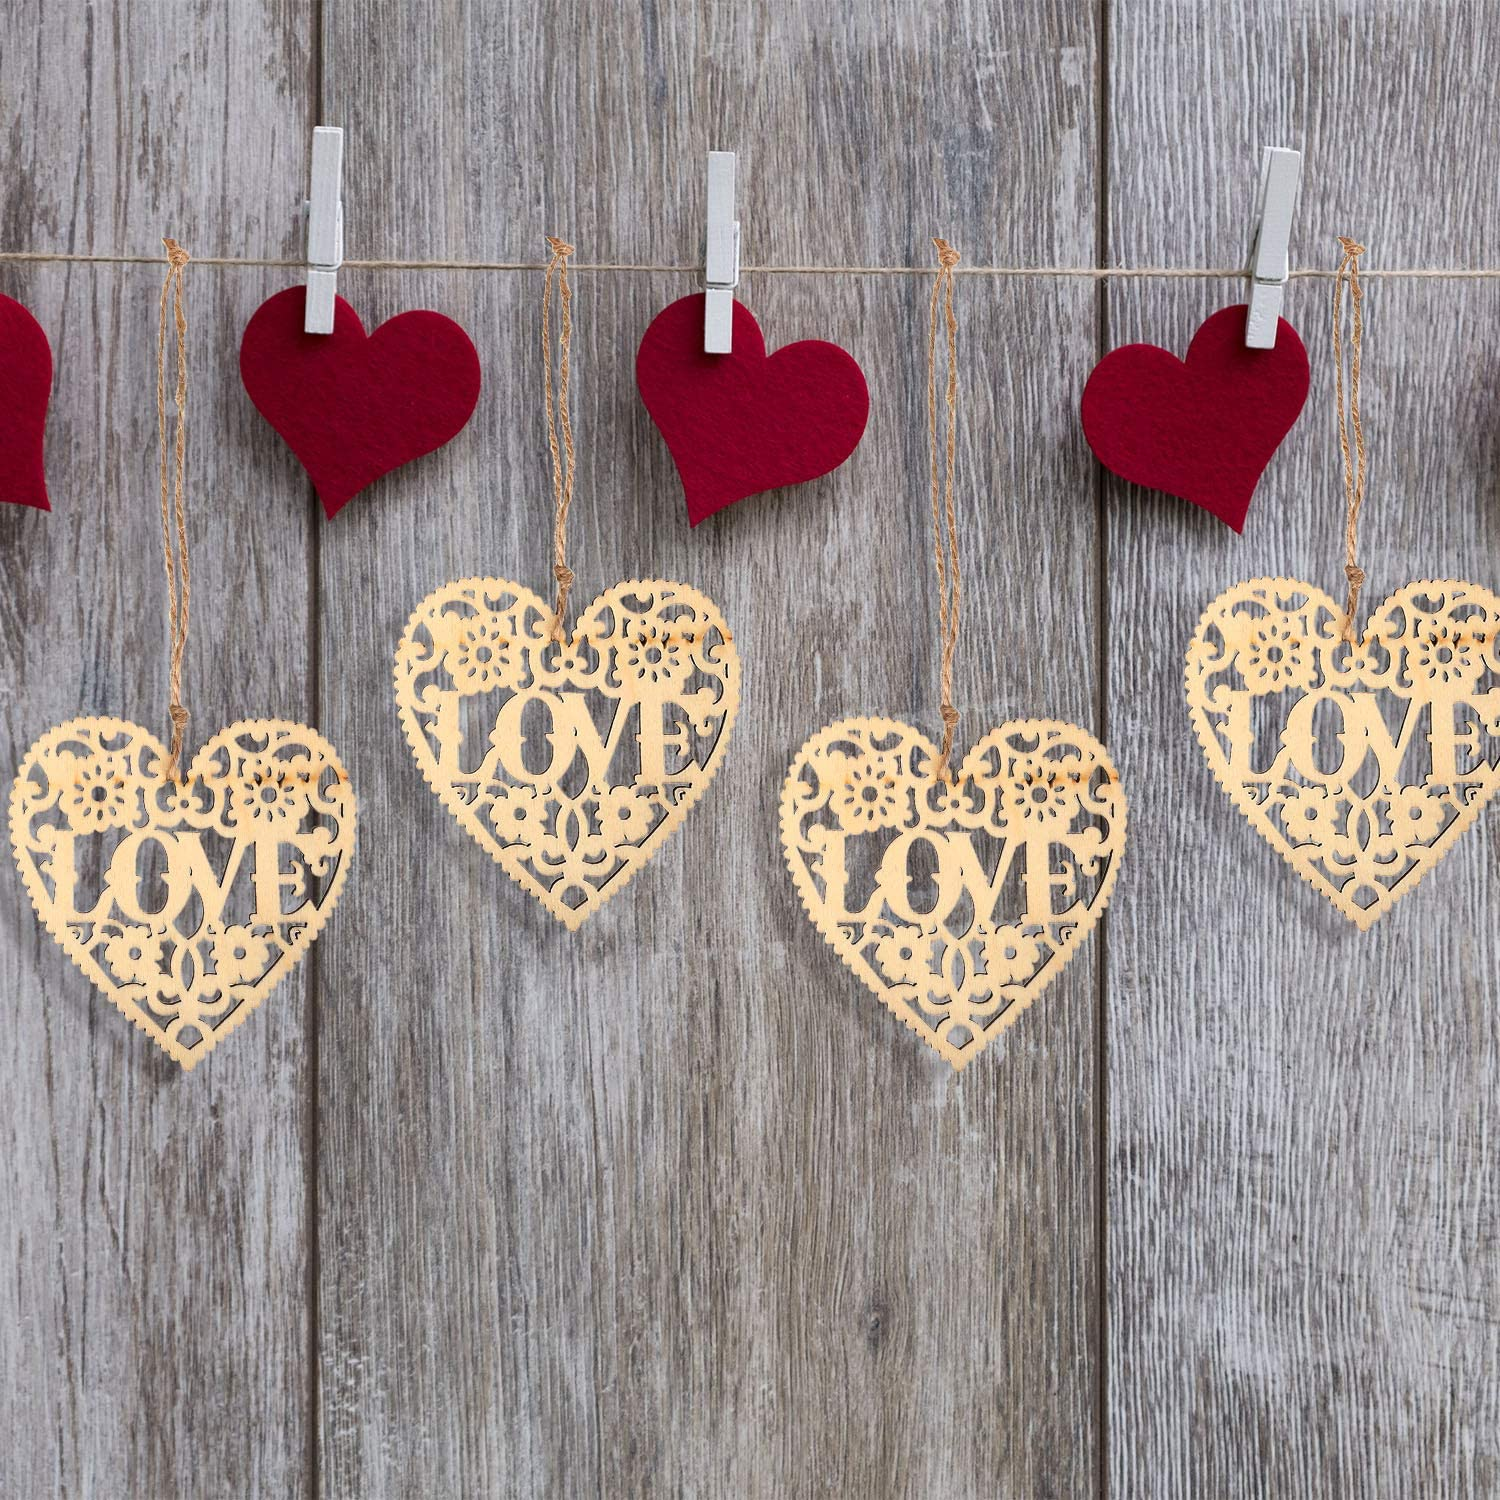 Nature Color, 60 Tatuo Heart Wooden Embellishments Wood Tags Love Heart Hanging Ornament and Twines for Valentines Day Decorations Wedding Crafts